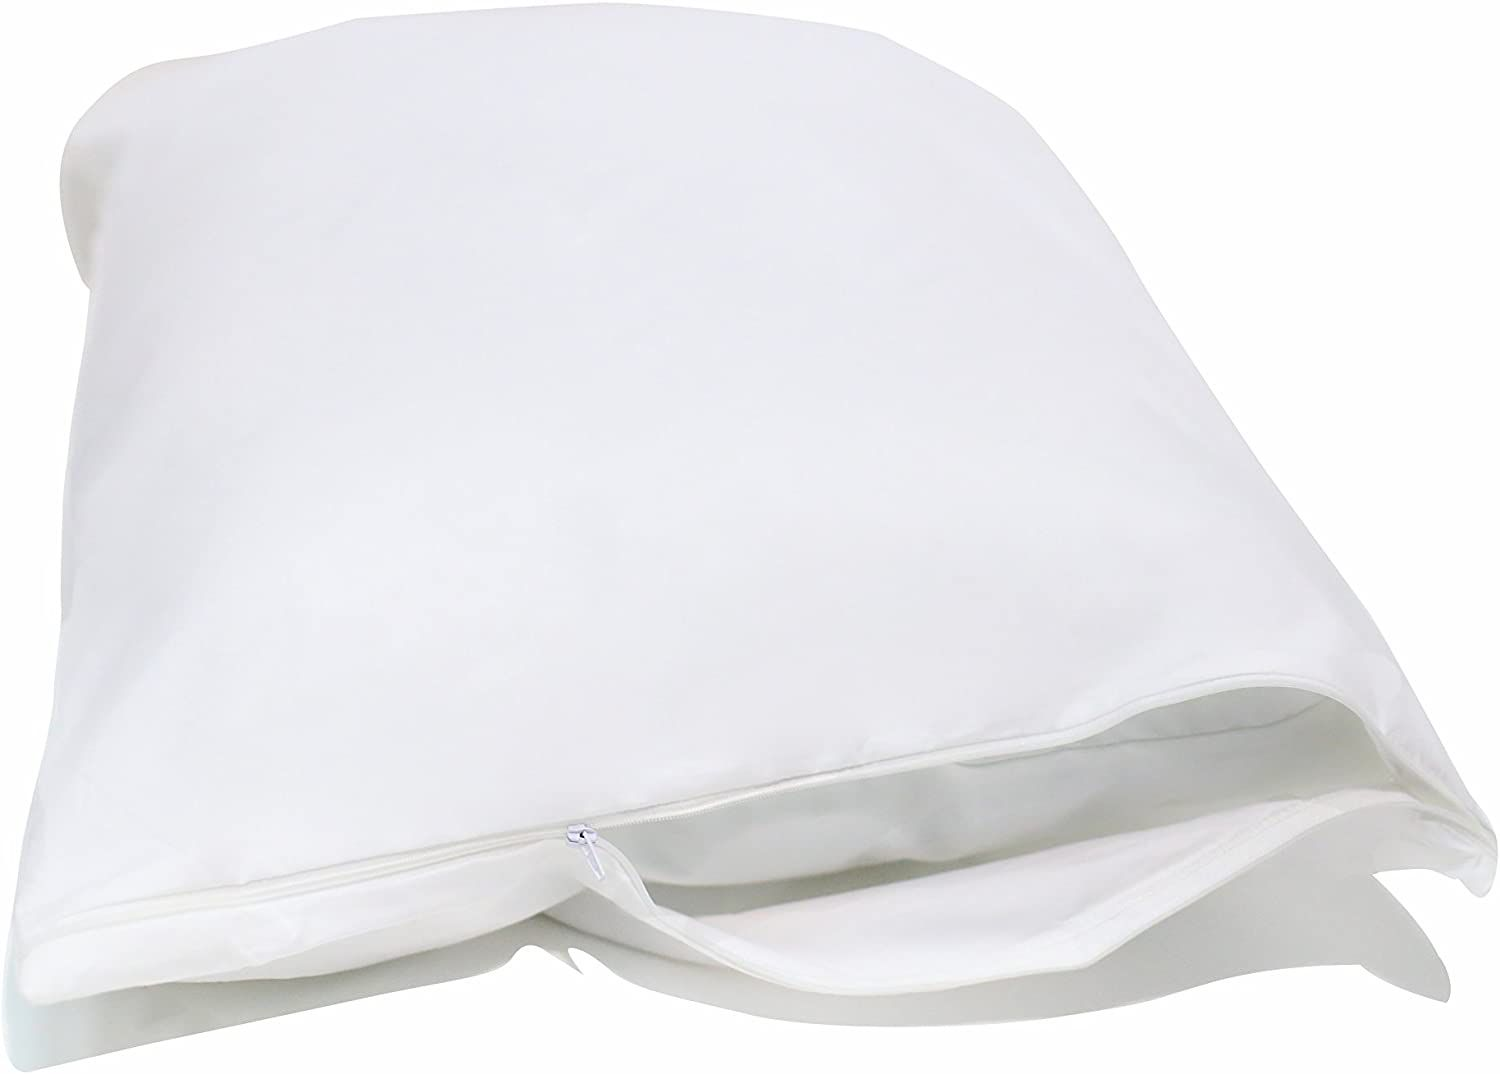 AllerSoft Cotton Dust Mite & Allergy Standard Pillow Protector